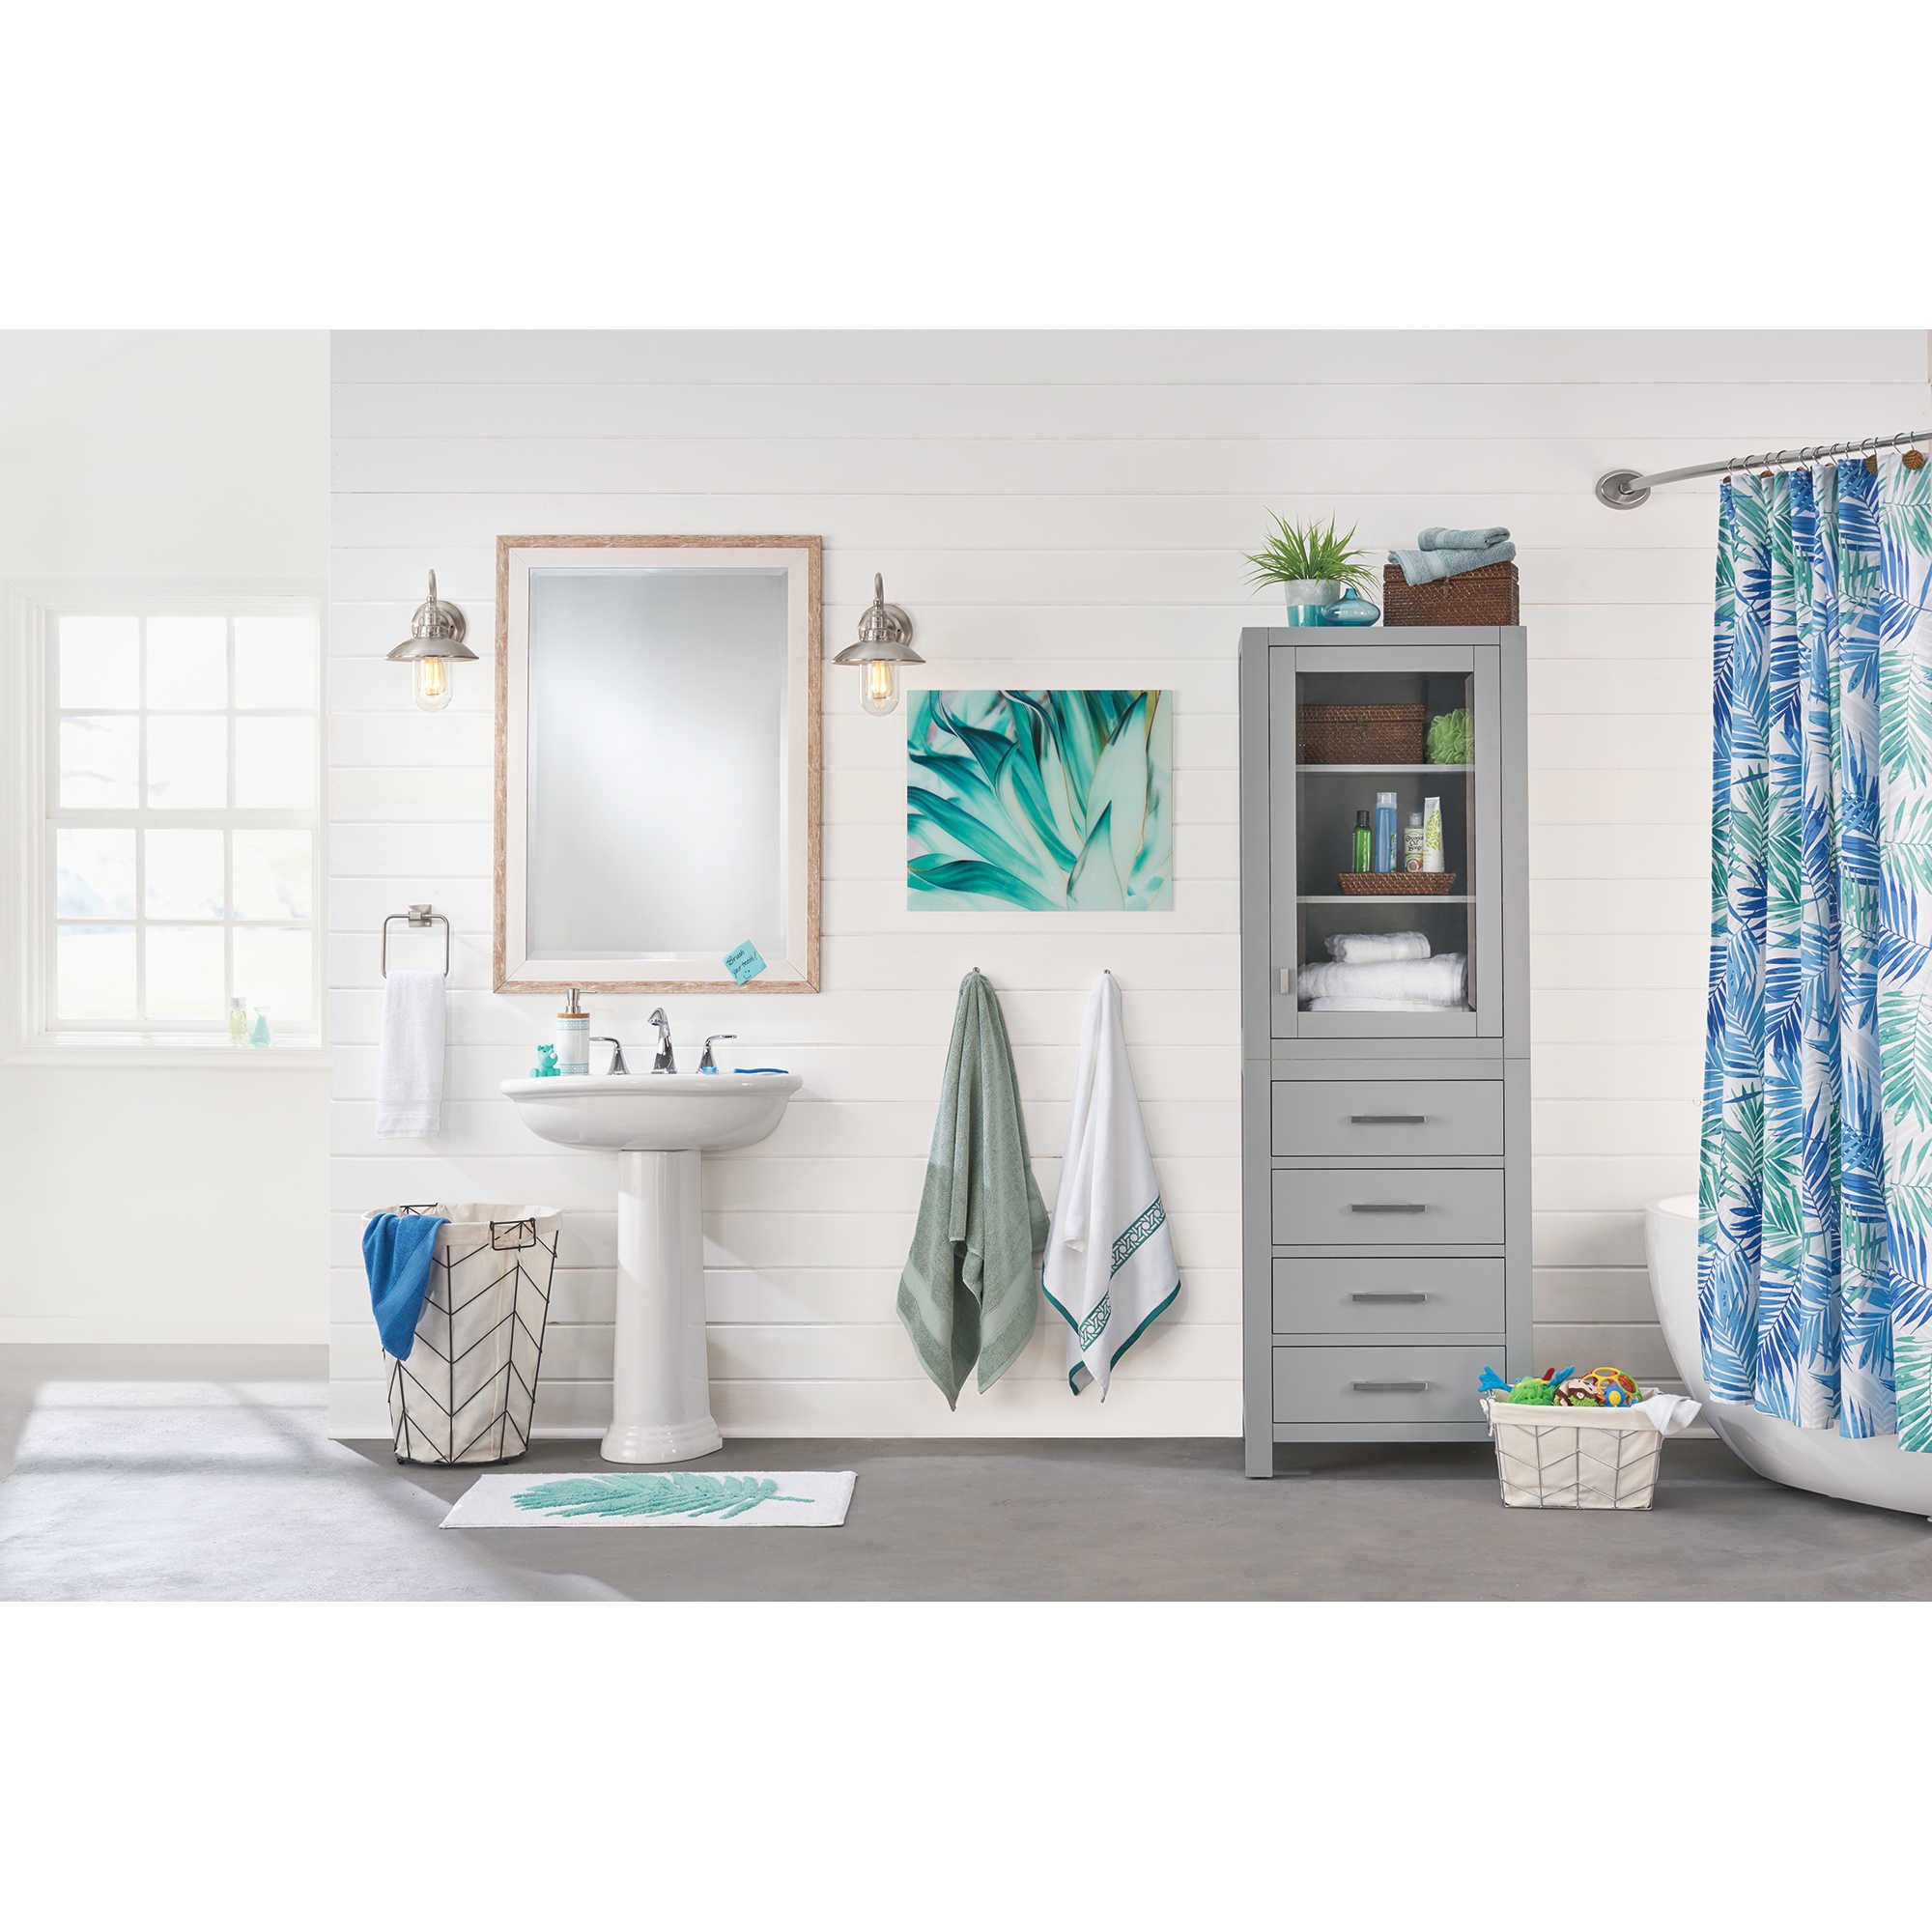 Tropical Oasis Coastal Bathroom - Bed Bath & Beyond